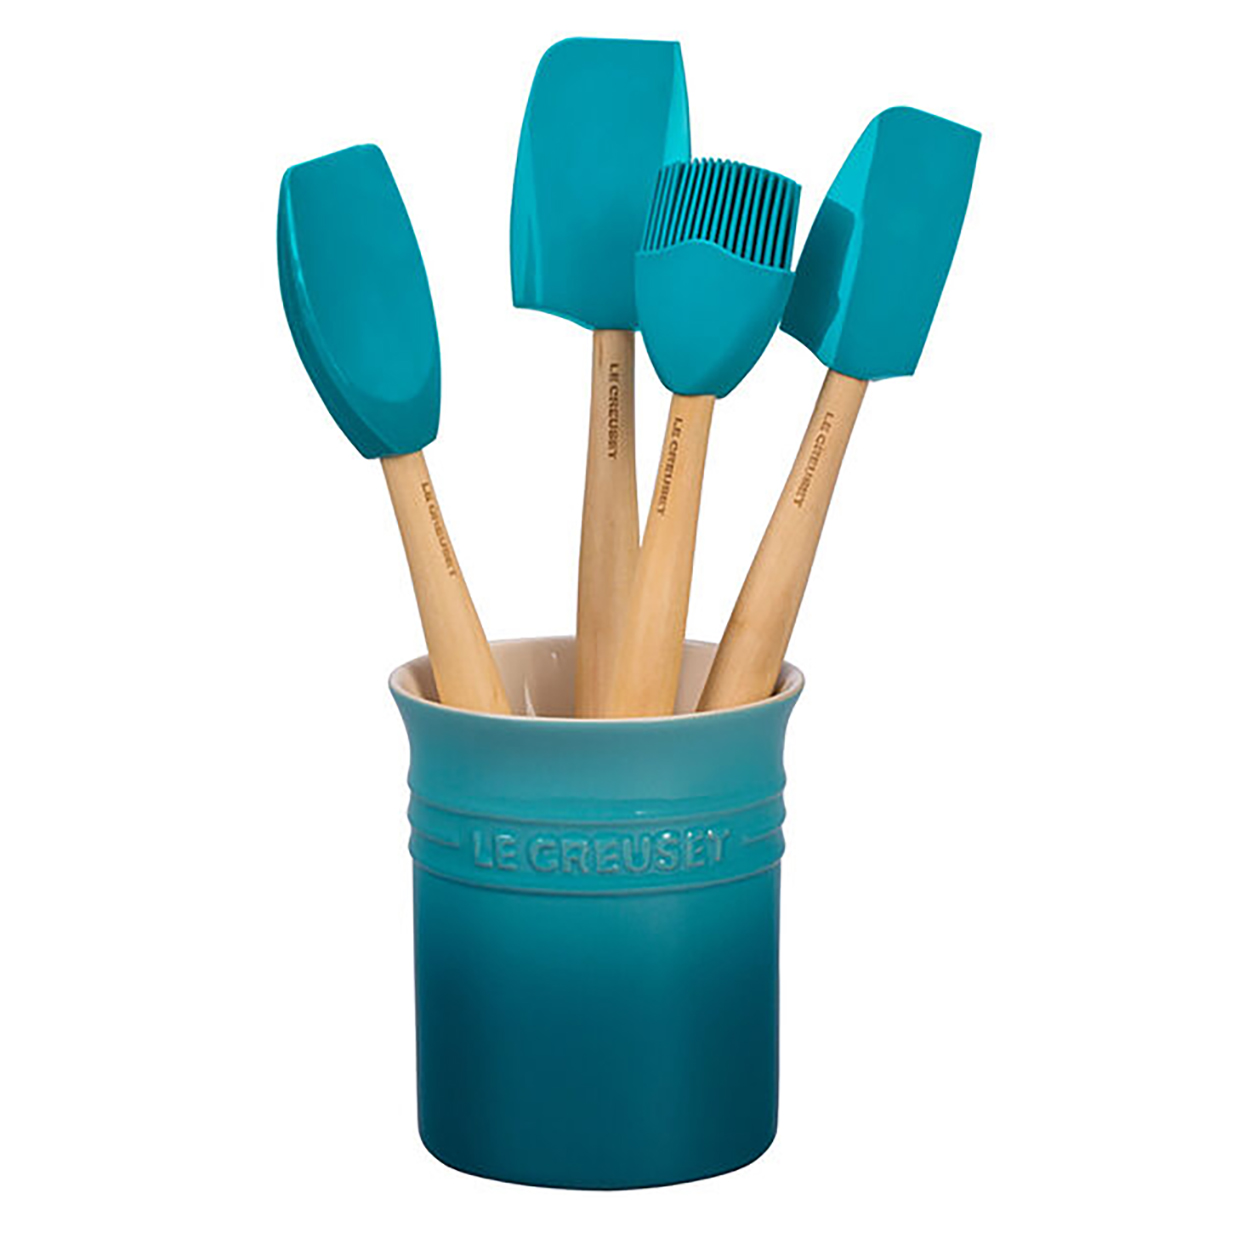 Le Creuset Utensils